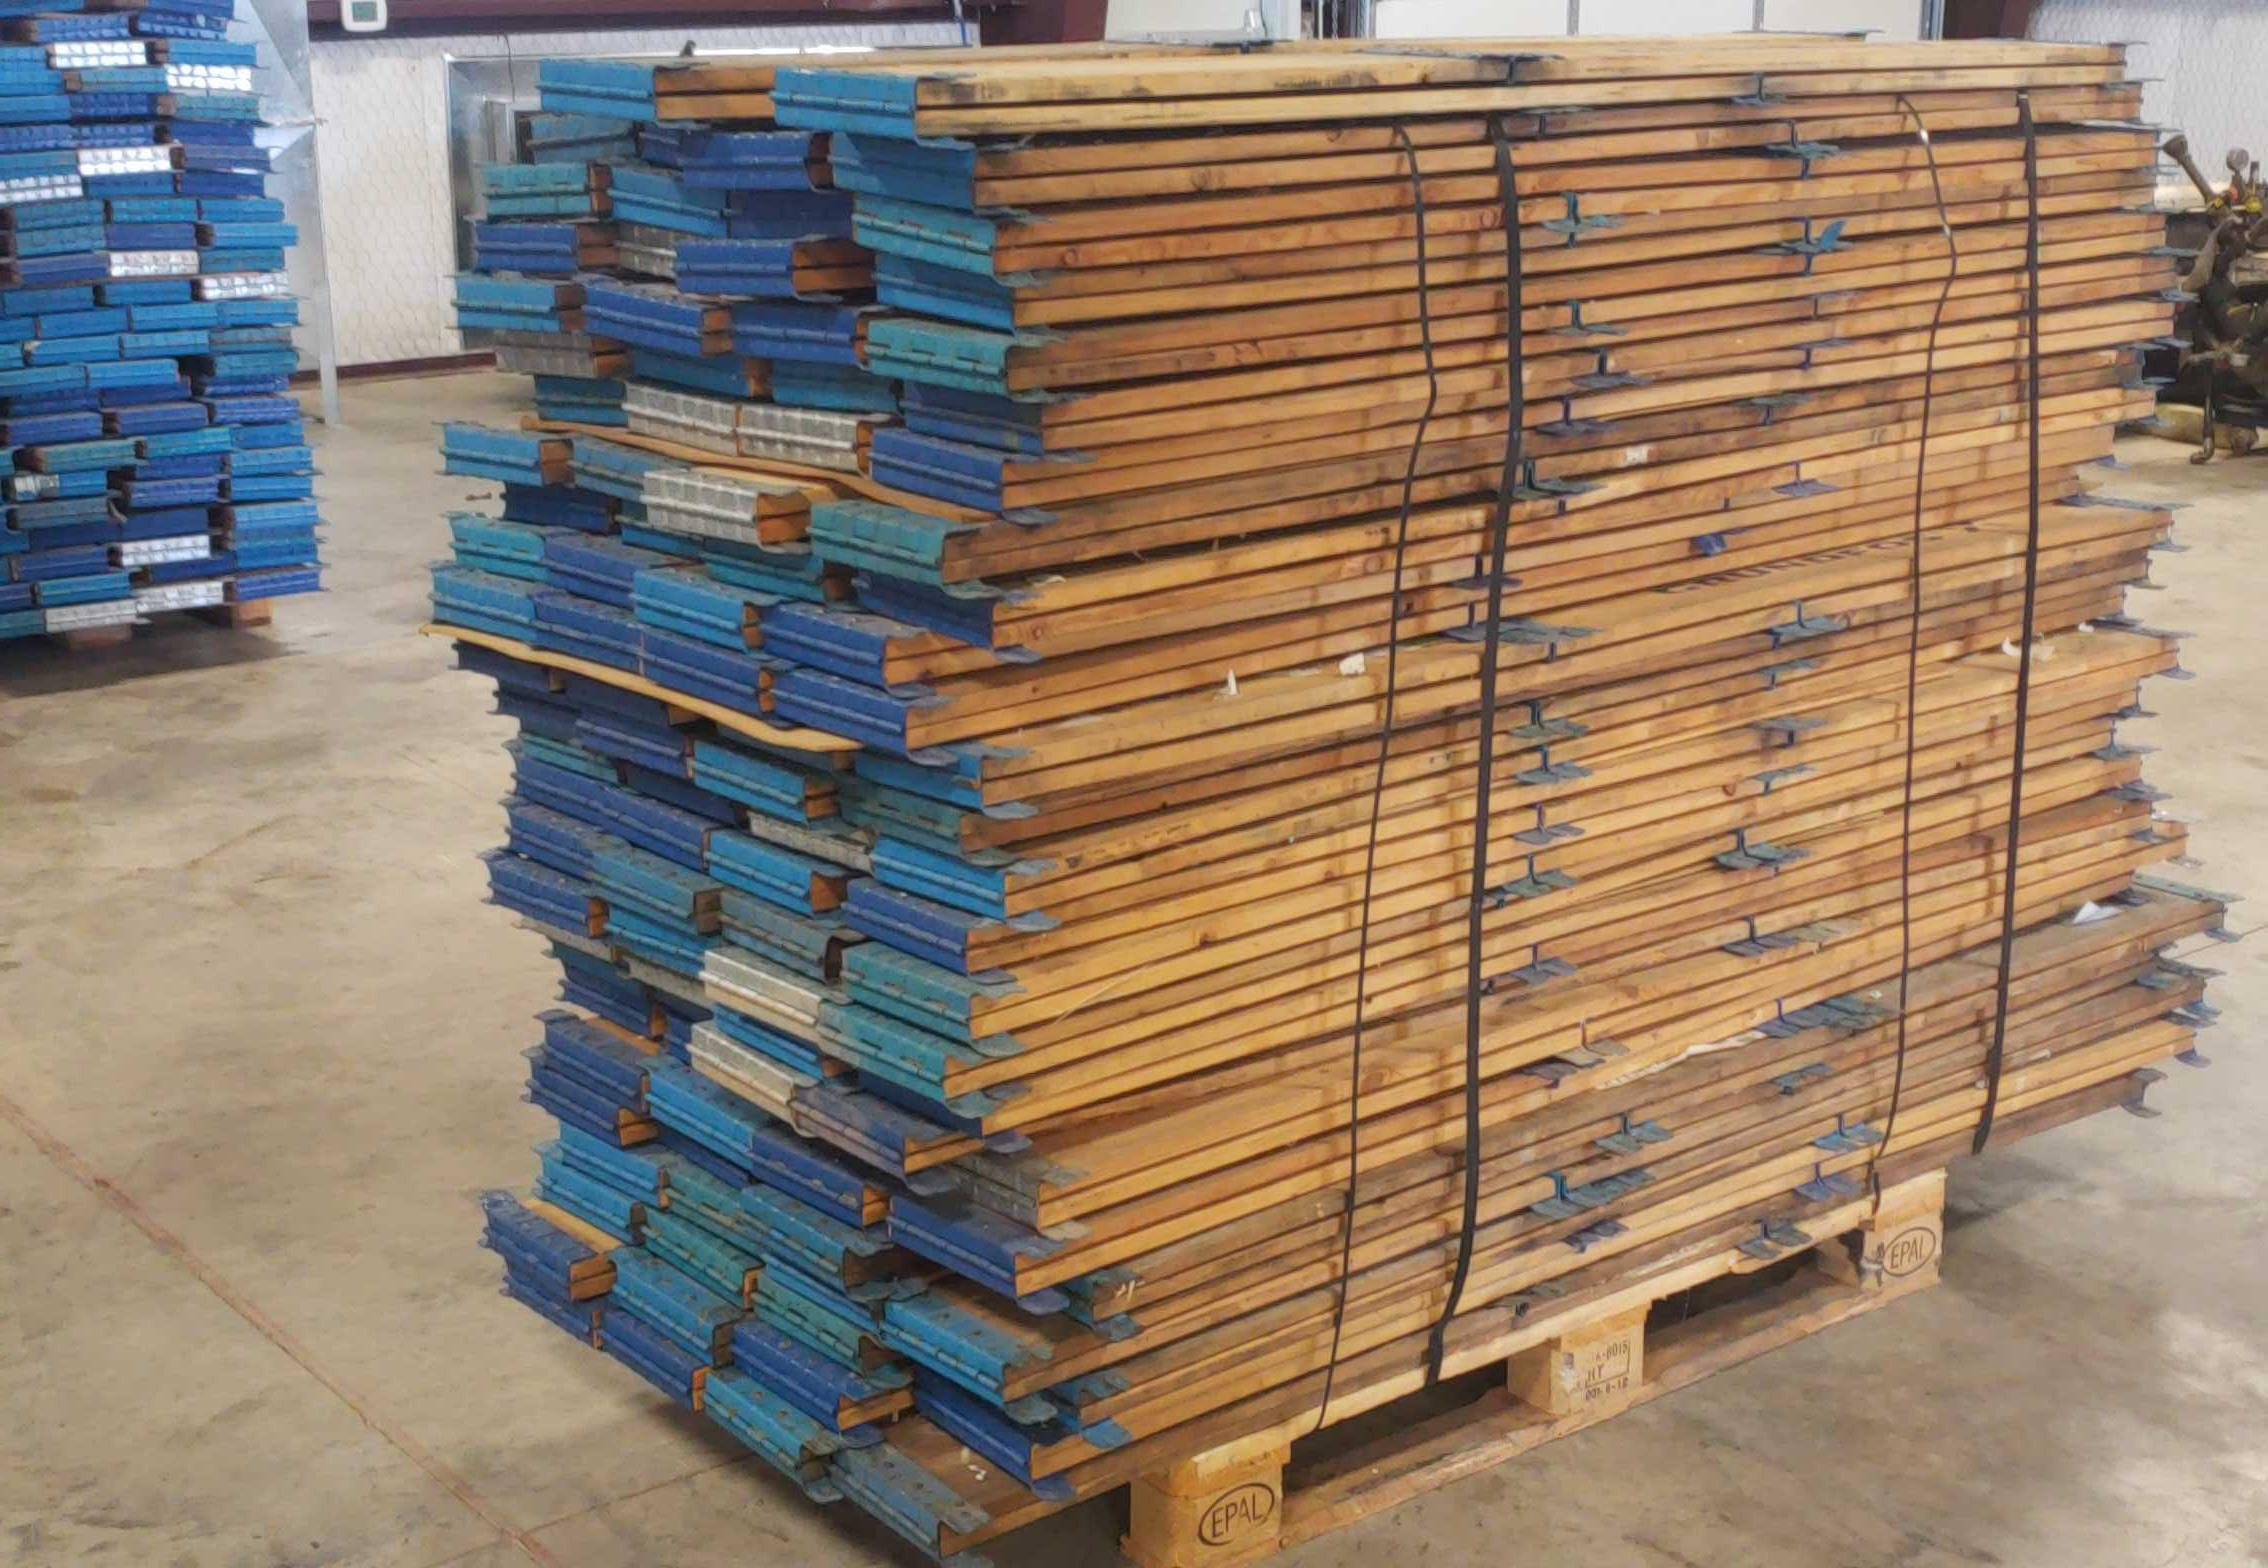 Lot 40 - 103 pcs- 29-3/4 X 45-5/8 X 7-1/4 Inside dimensions, Stackable wood frames for pallets